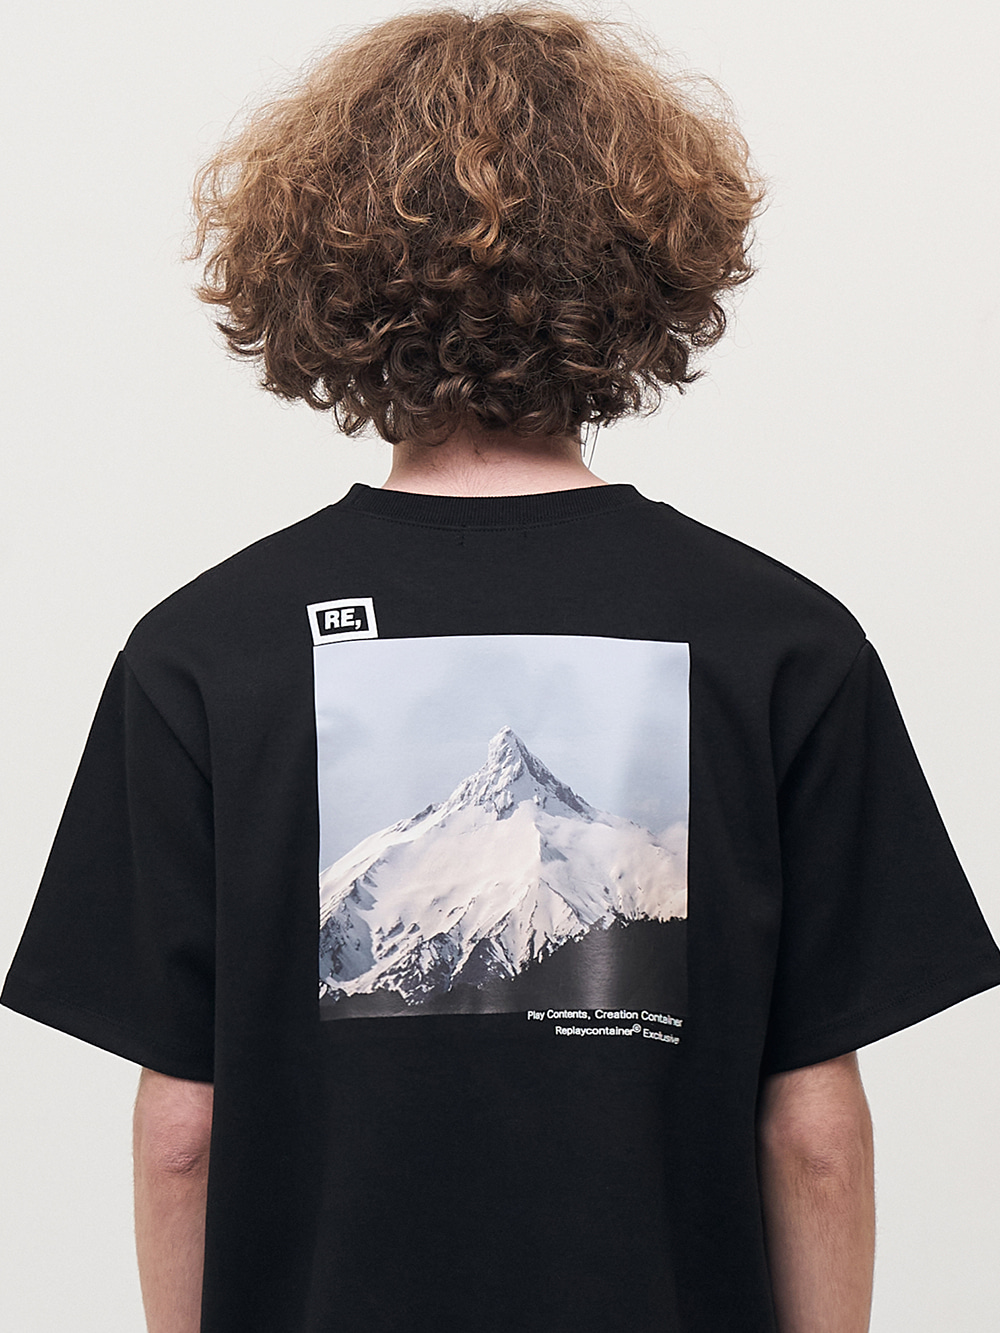 RE square black campaign half tee (snow mountain)